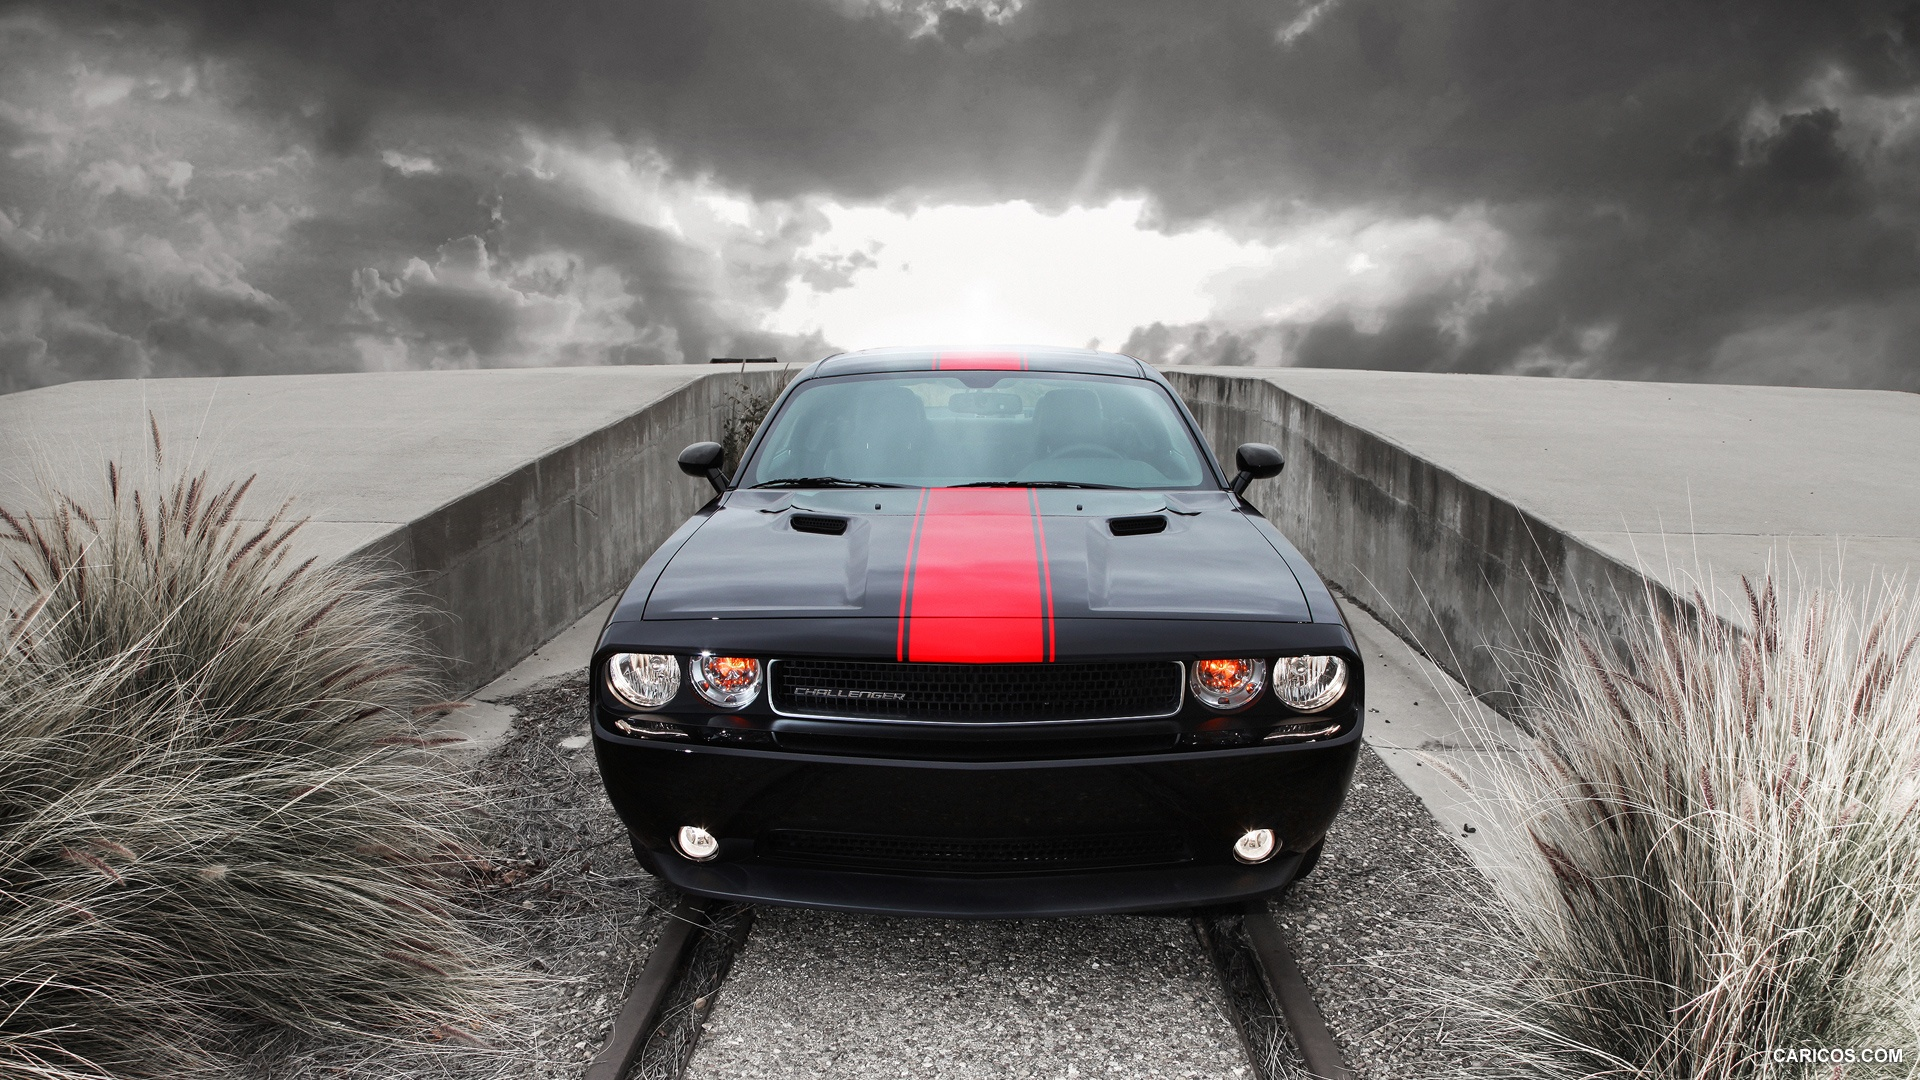 1920x1080 - Dodge Challenger Rallye Wallpapers 6